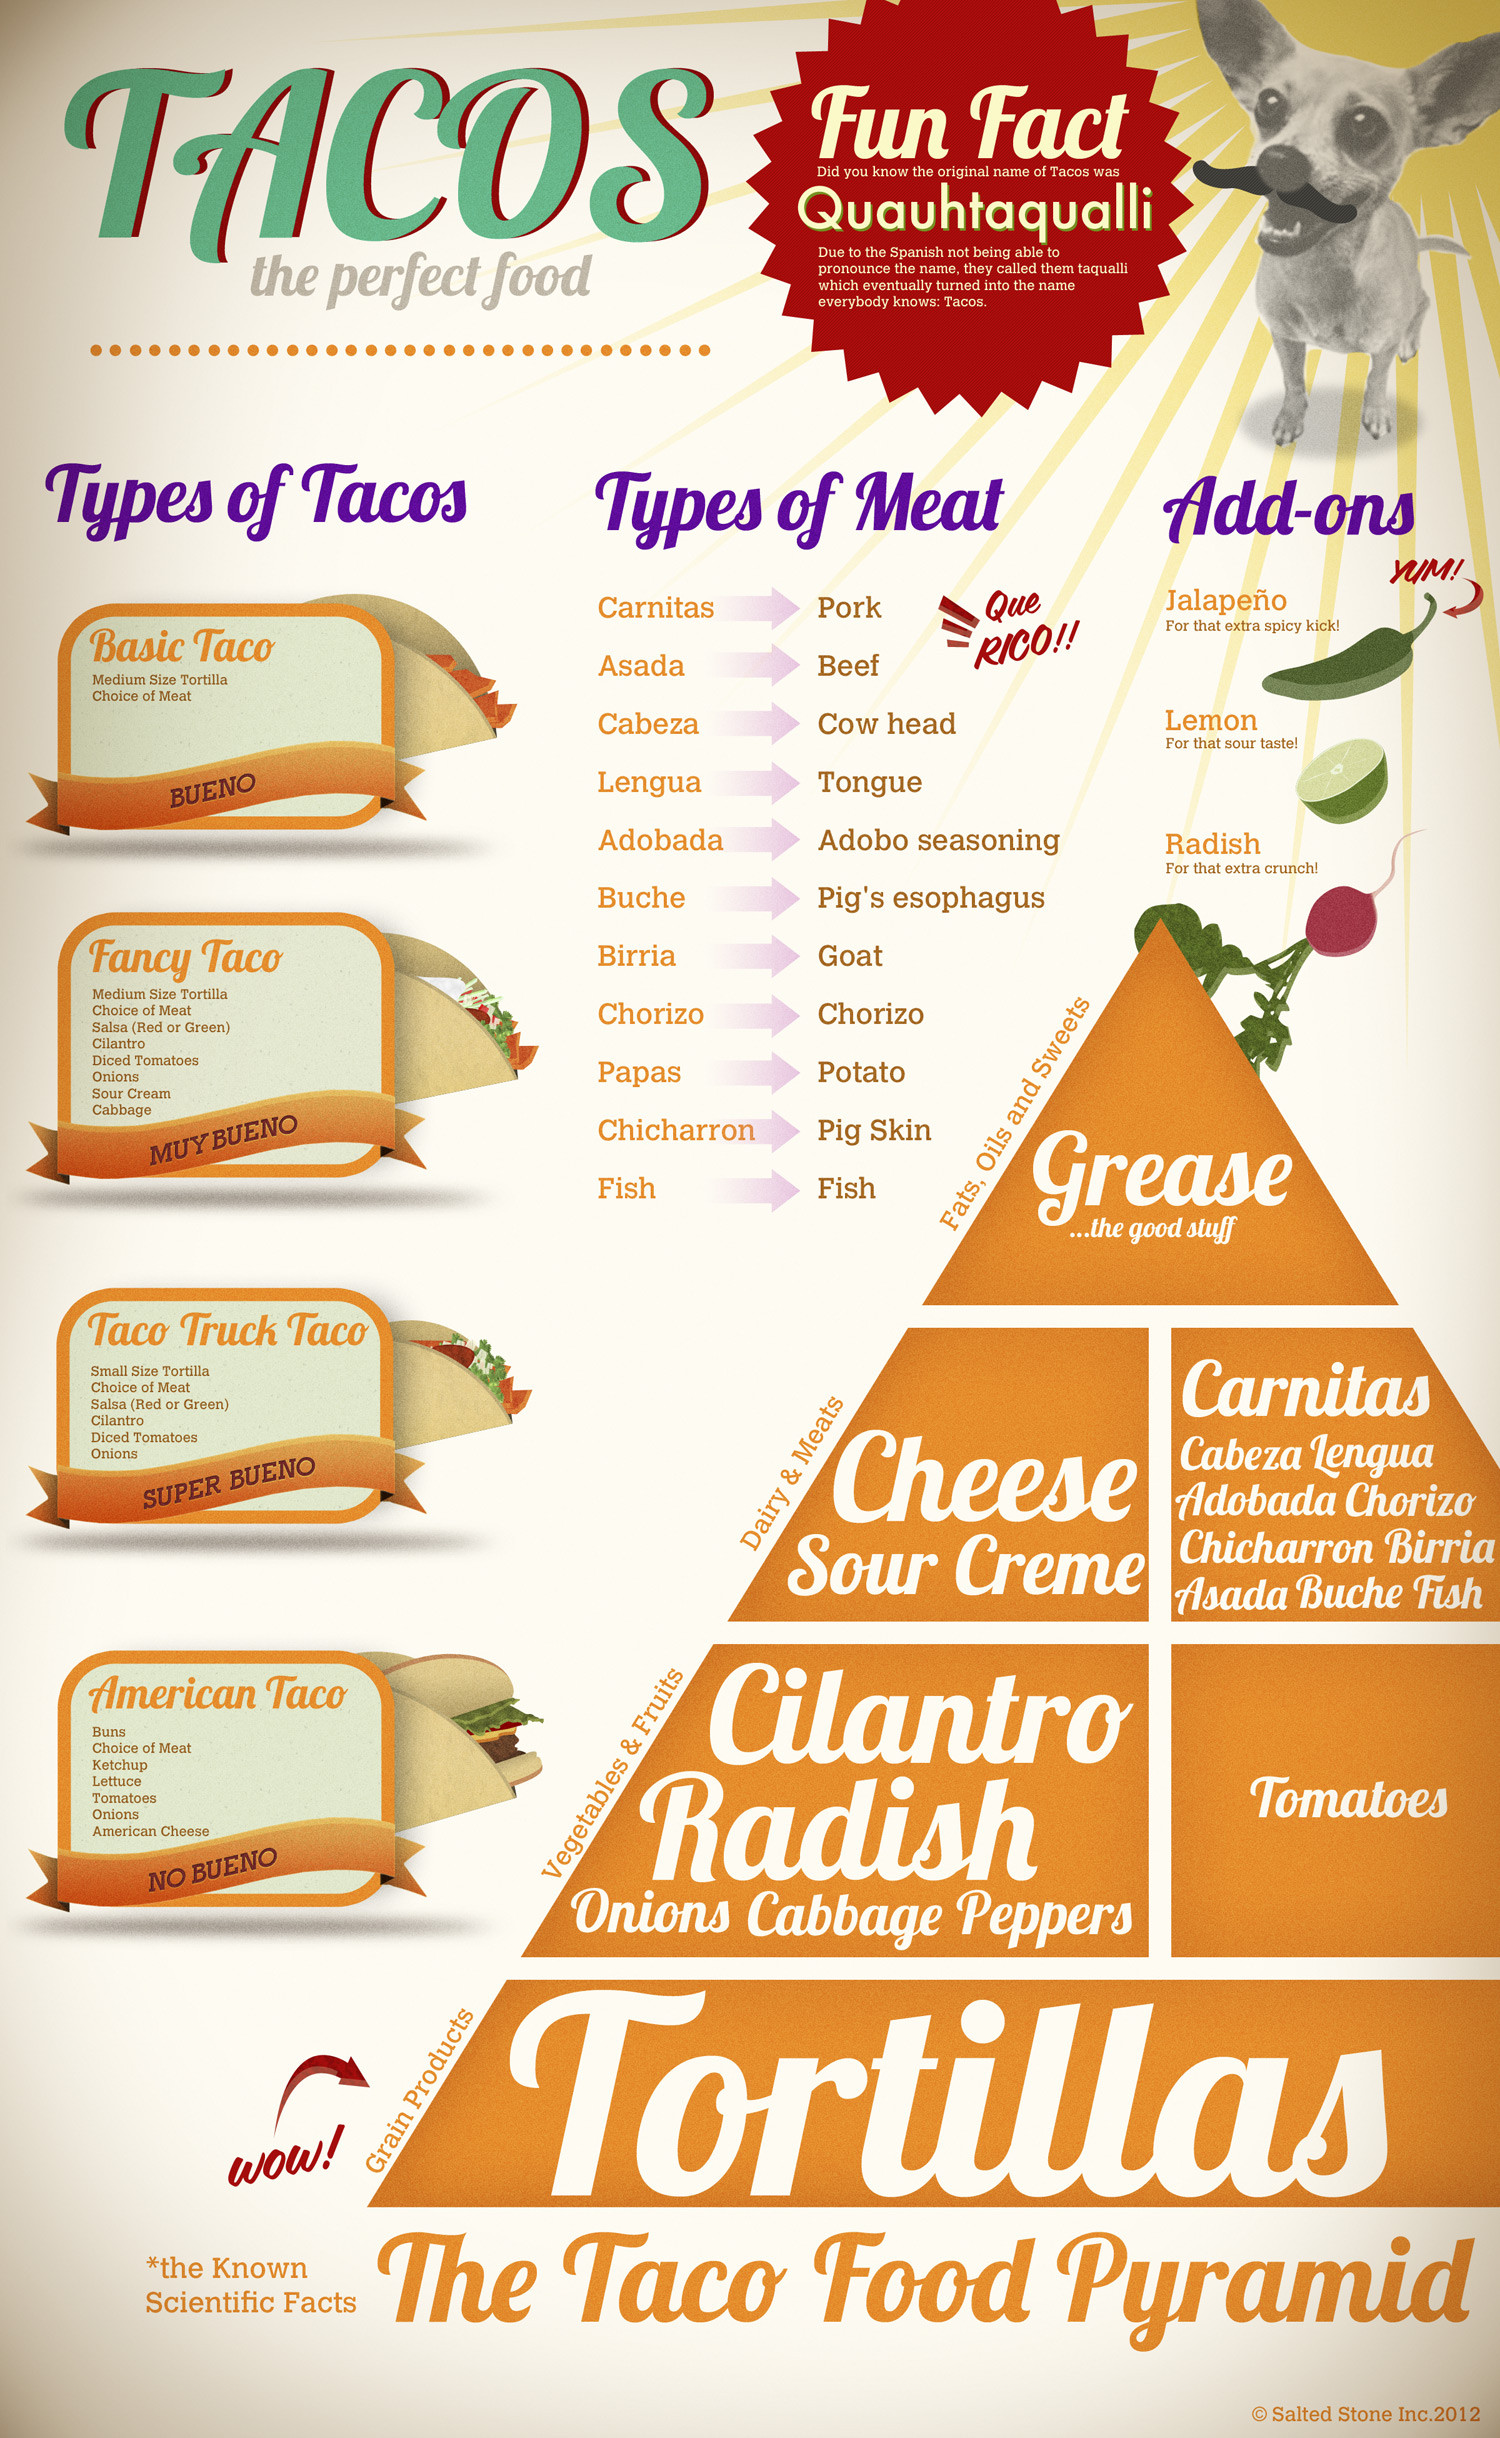 Tacos - The Perfect Food Infographic